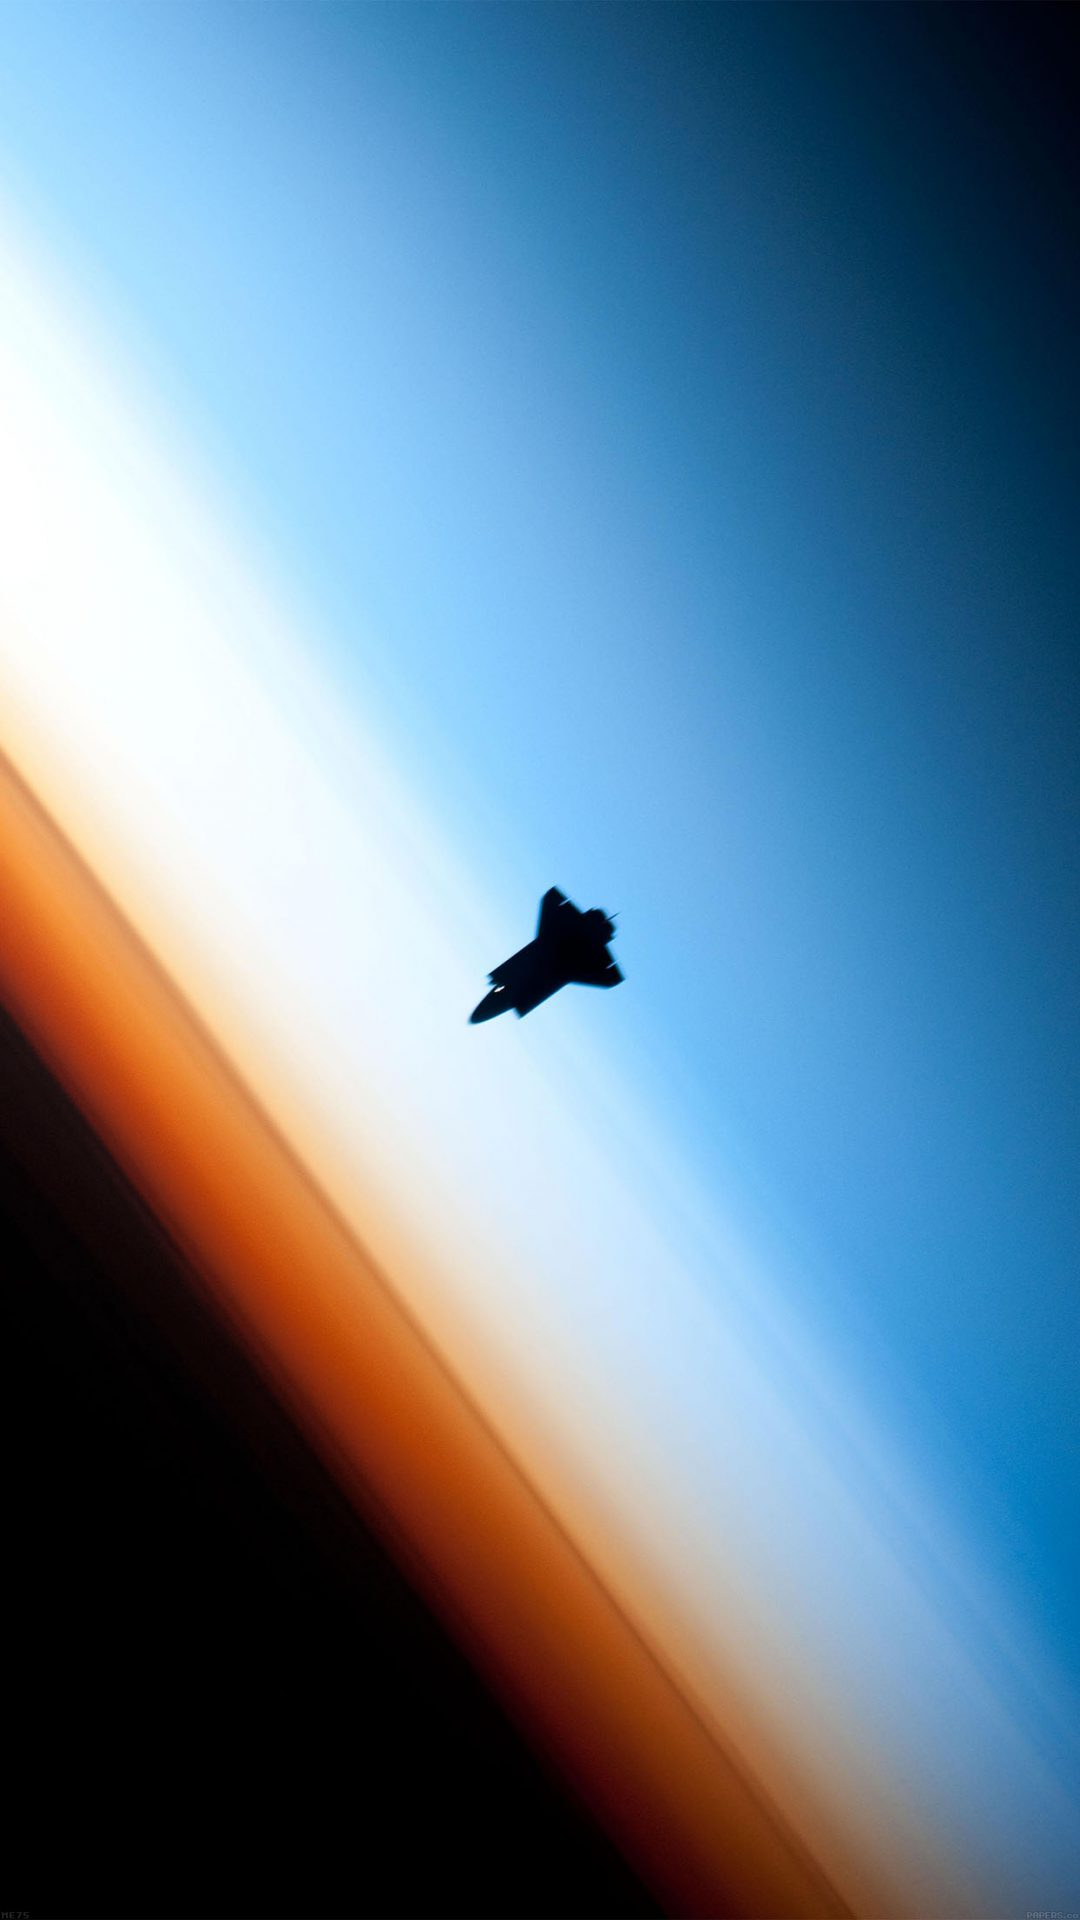 Endeavor Horizon Spaceship From Space